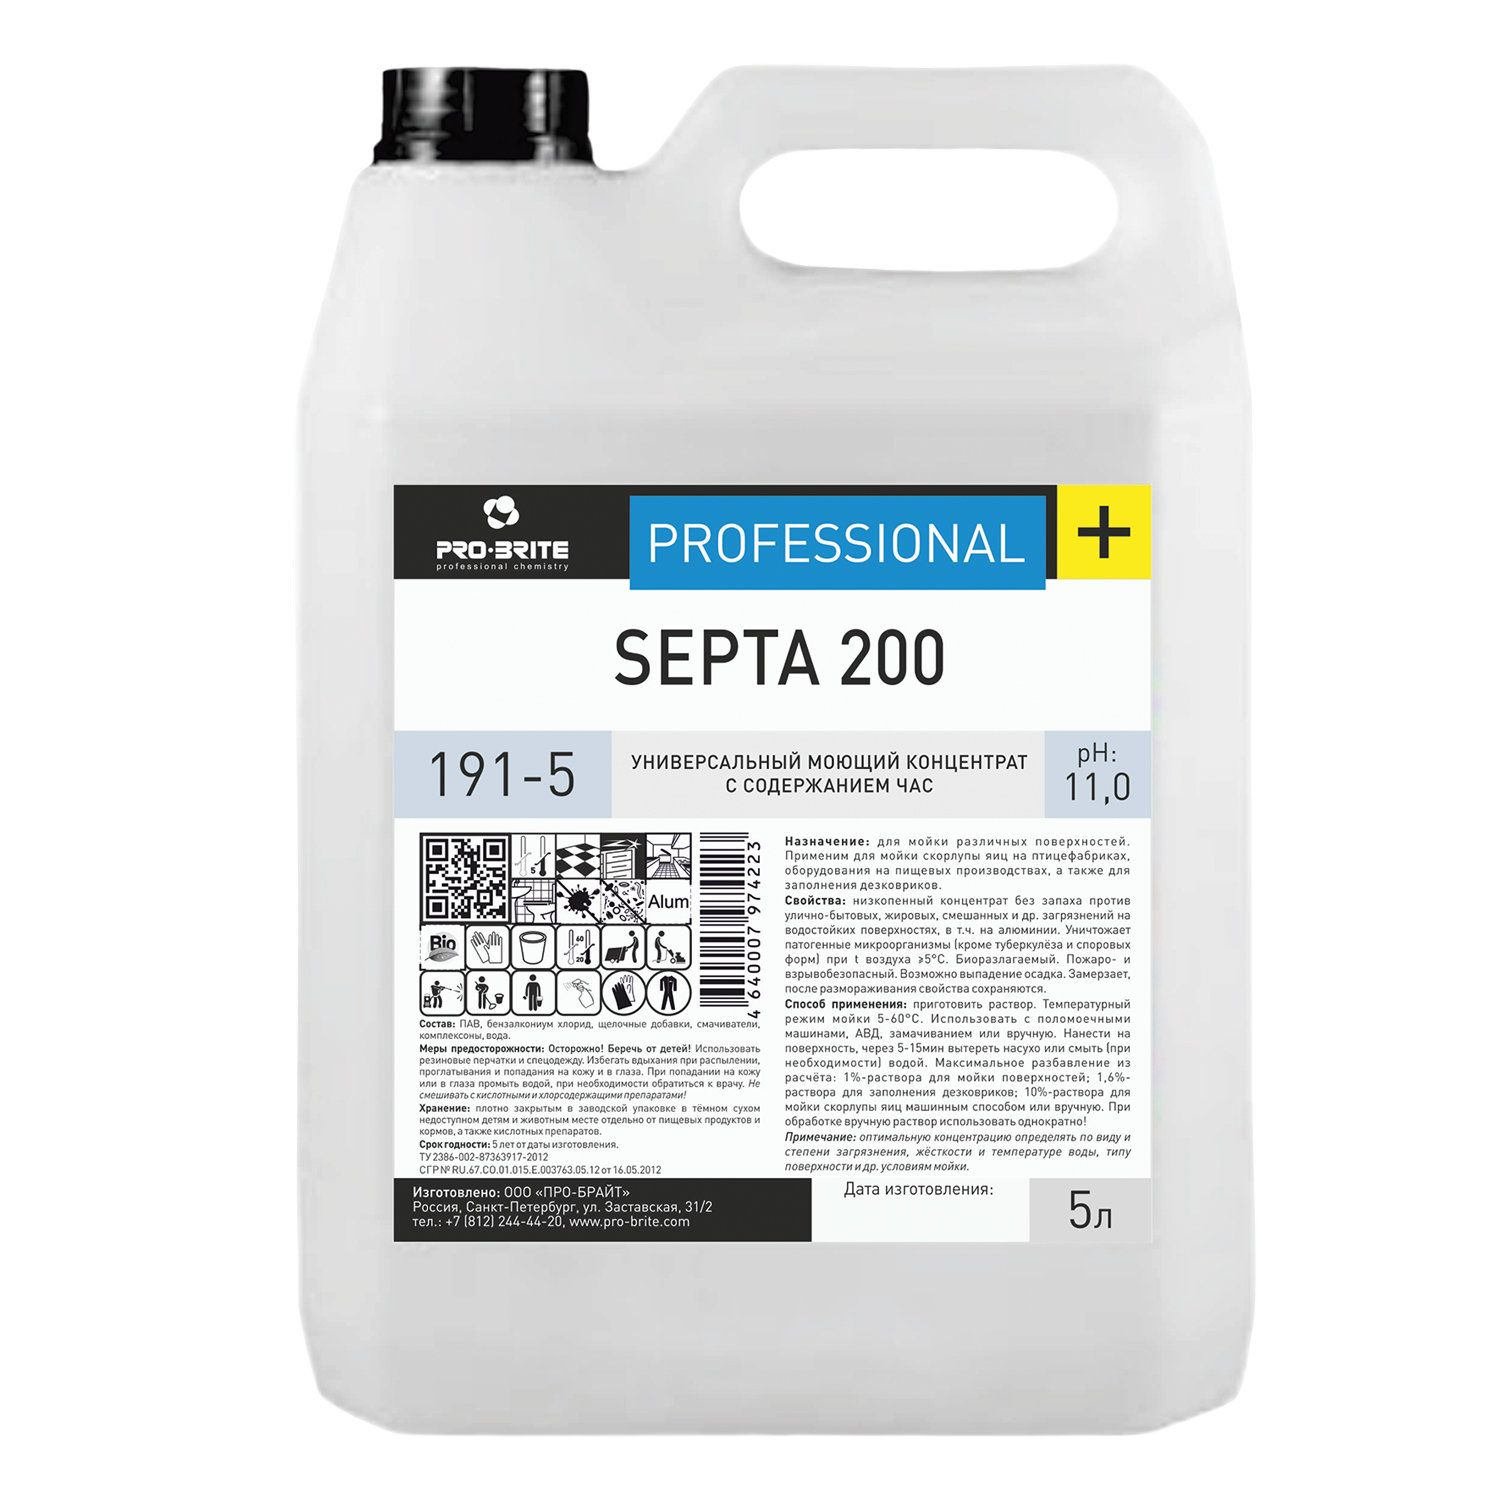 PRO-BRITE / Detergent with disinfectant effect SEPTA 200, concentrate 5 l